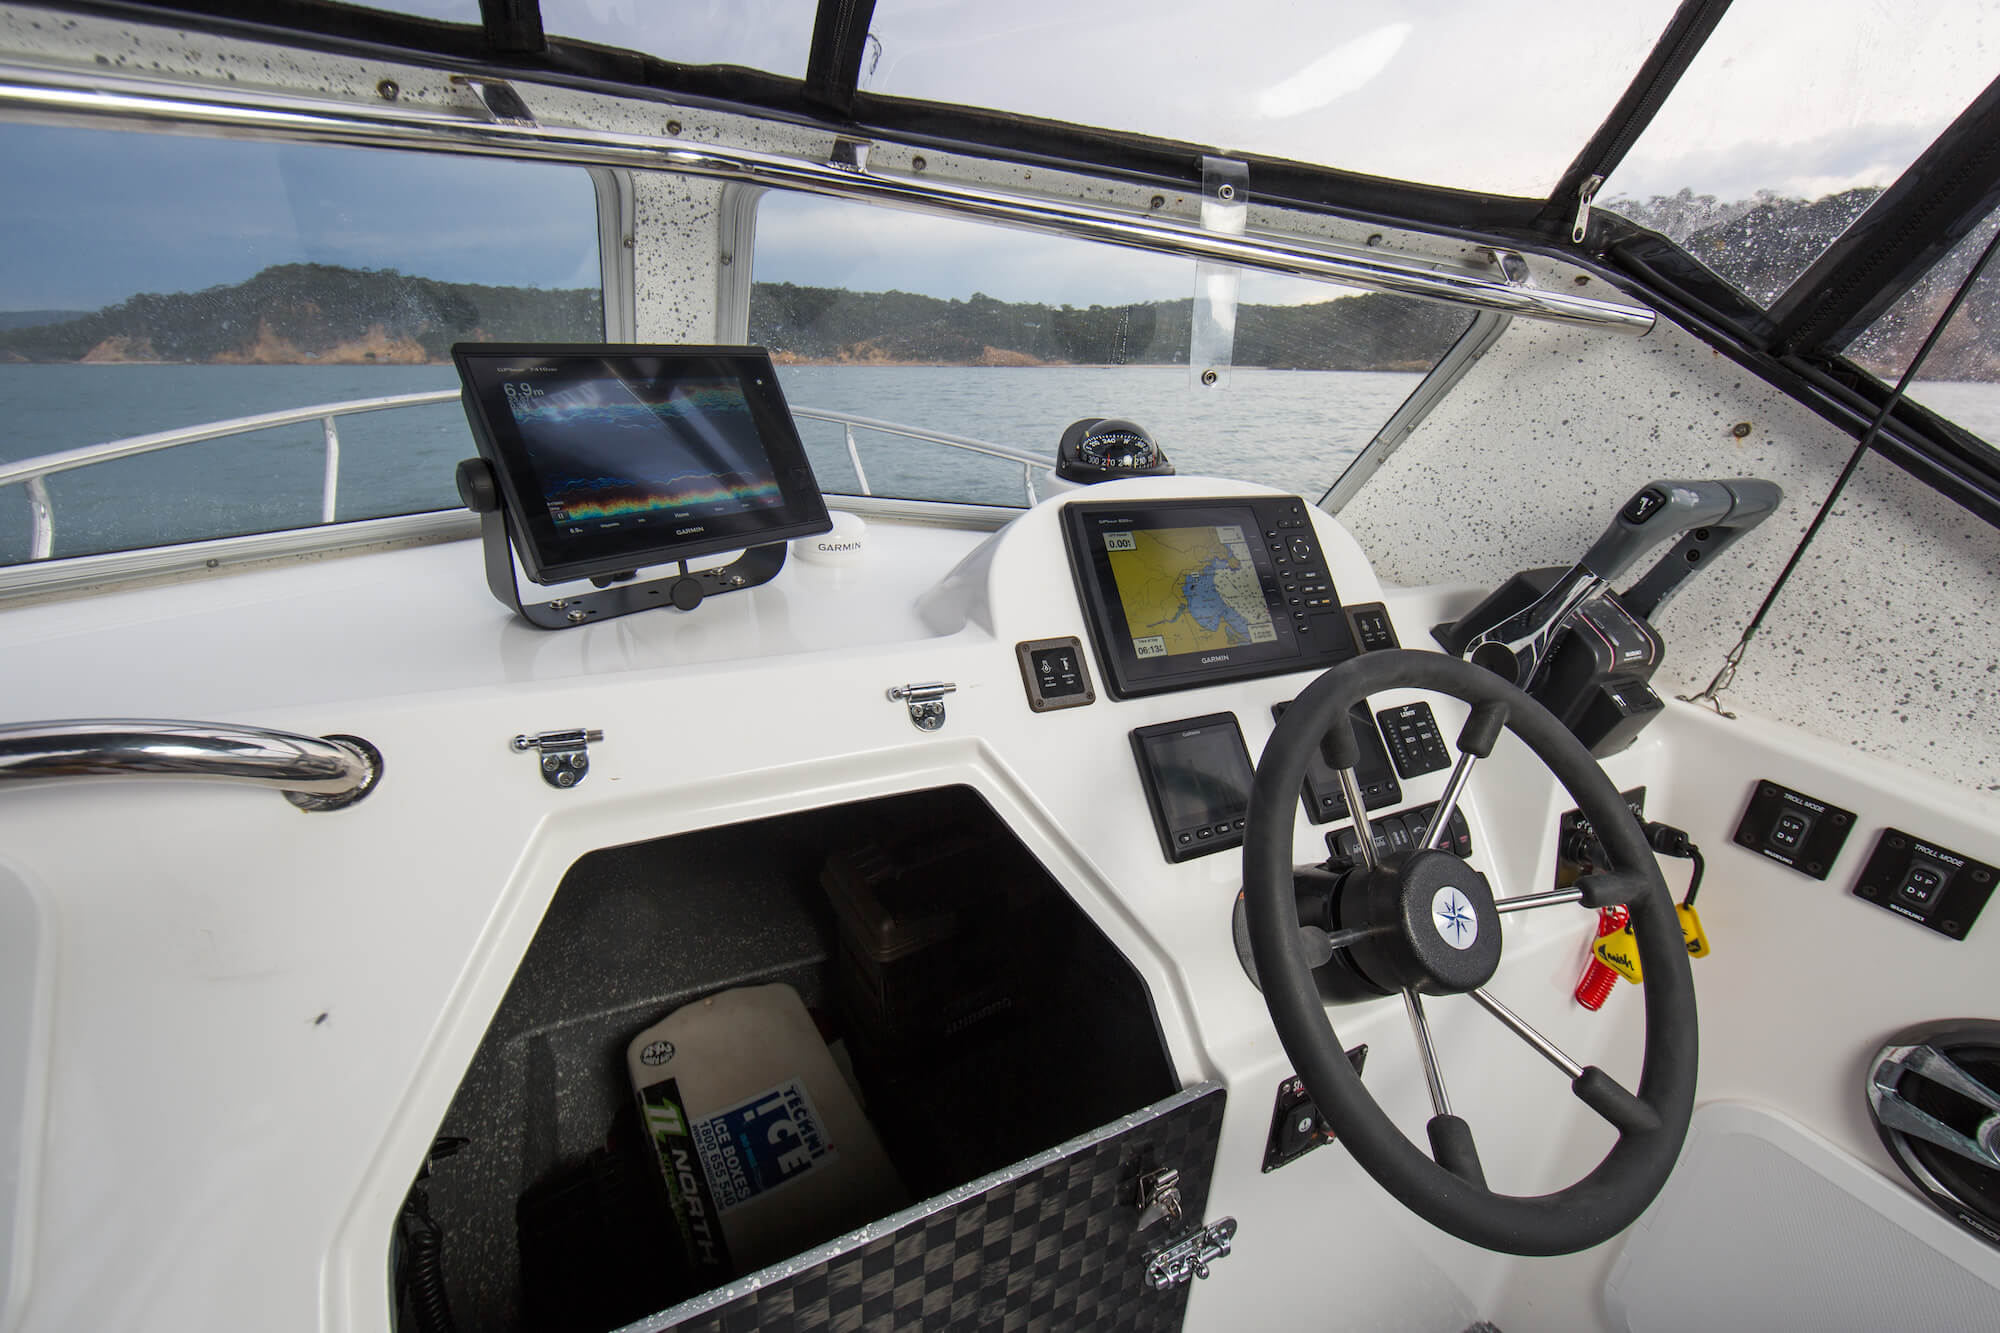 Electronics & controls on the Edencraft 6.0m Offshore dash